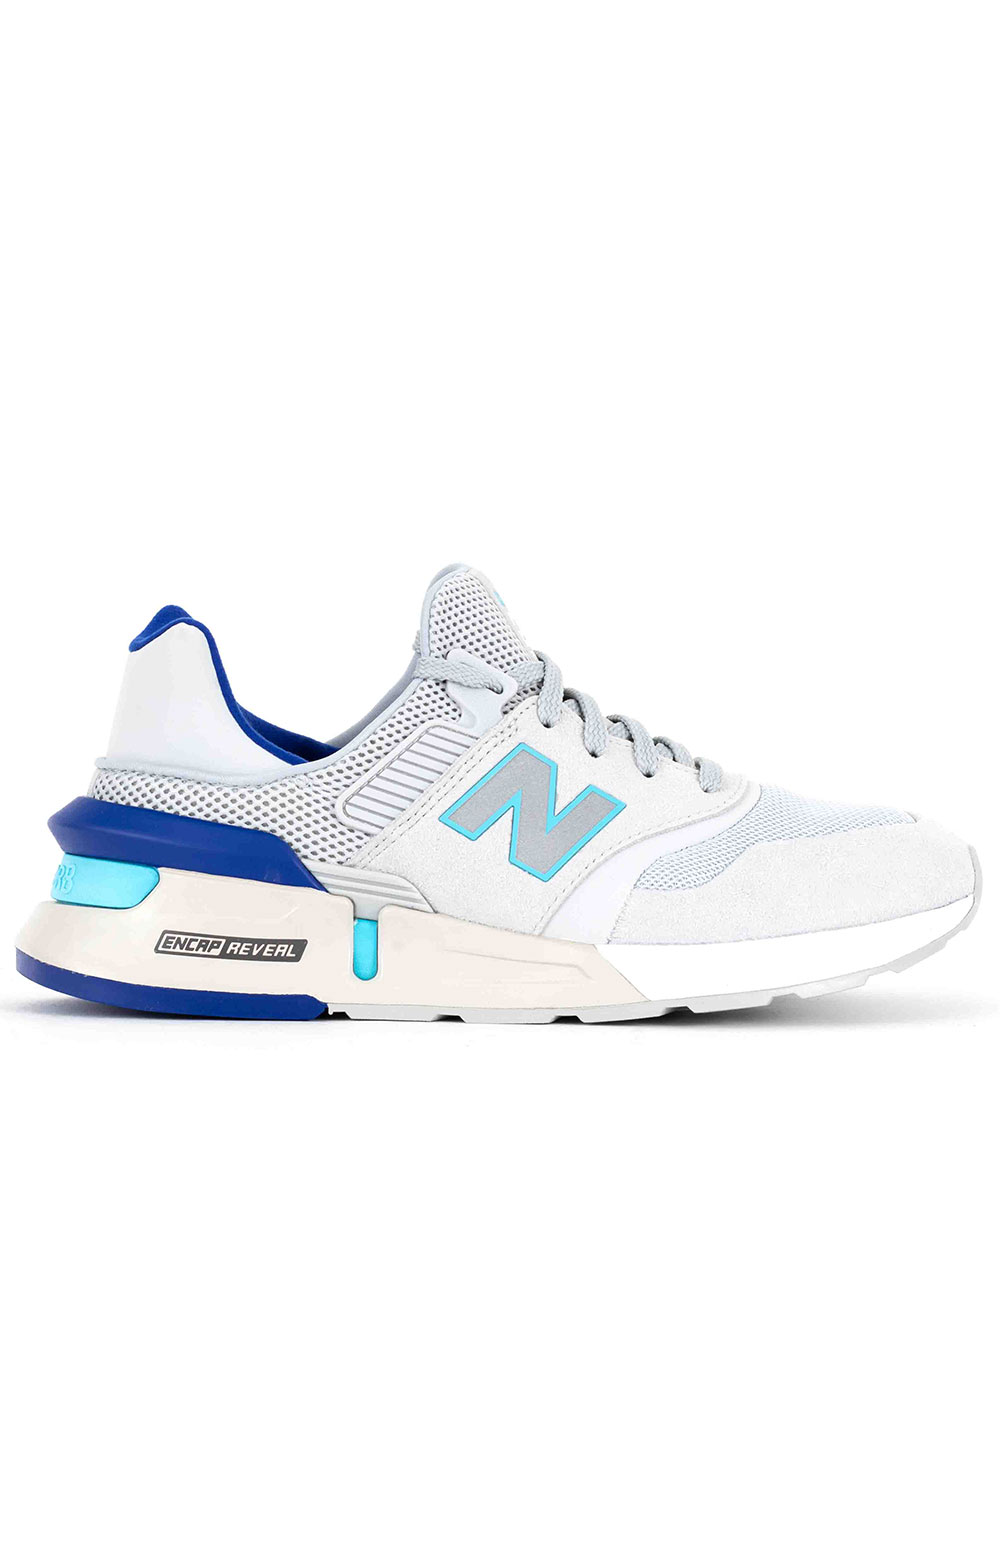 (MS997RA) 997 Sport Shoes -  Light Aluminum/Bayside